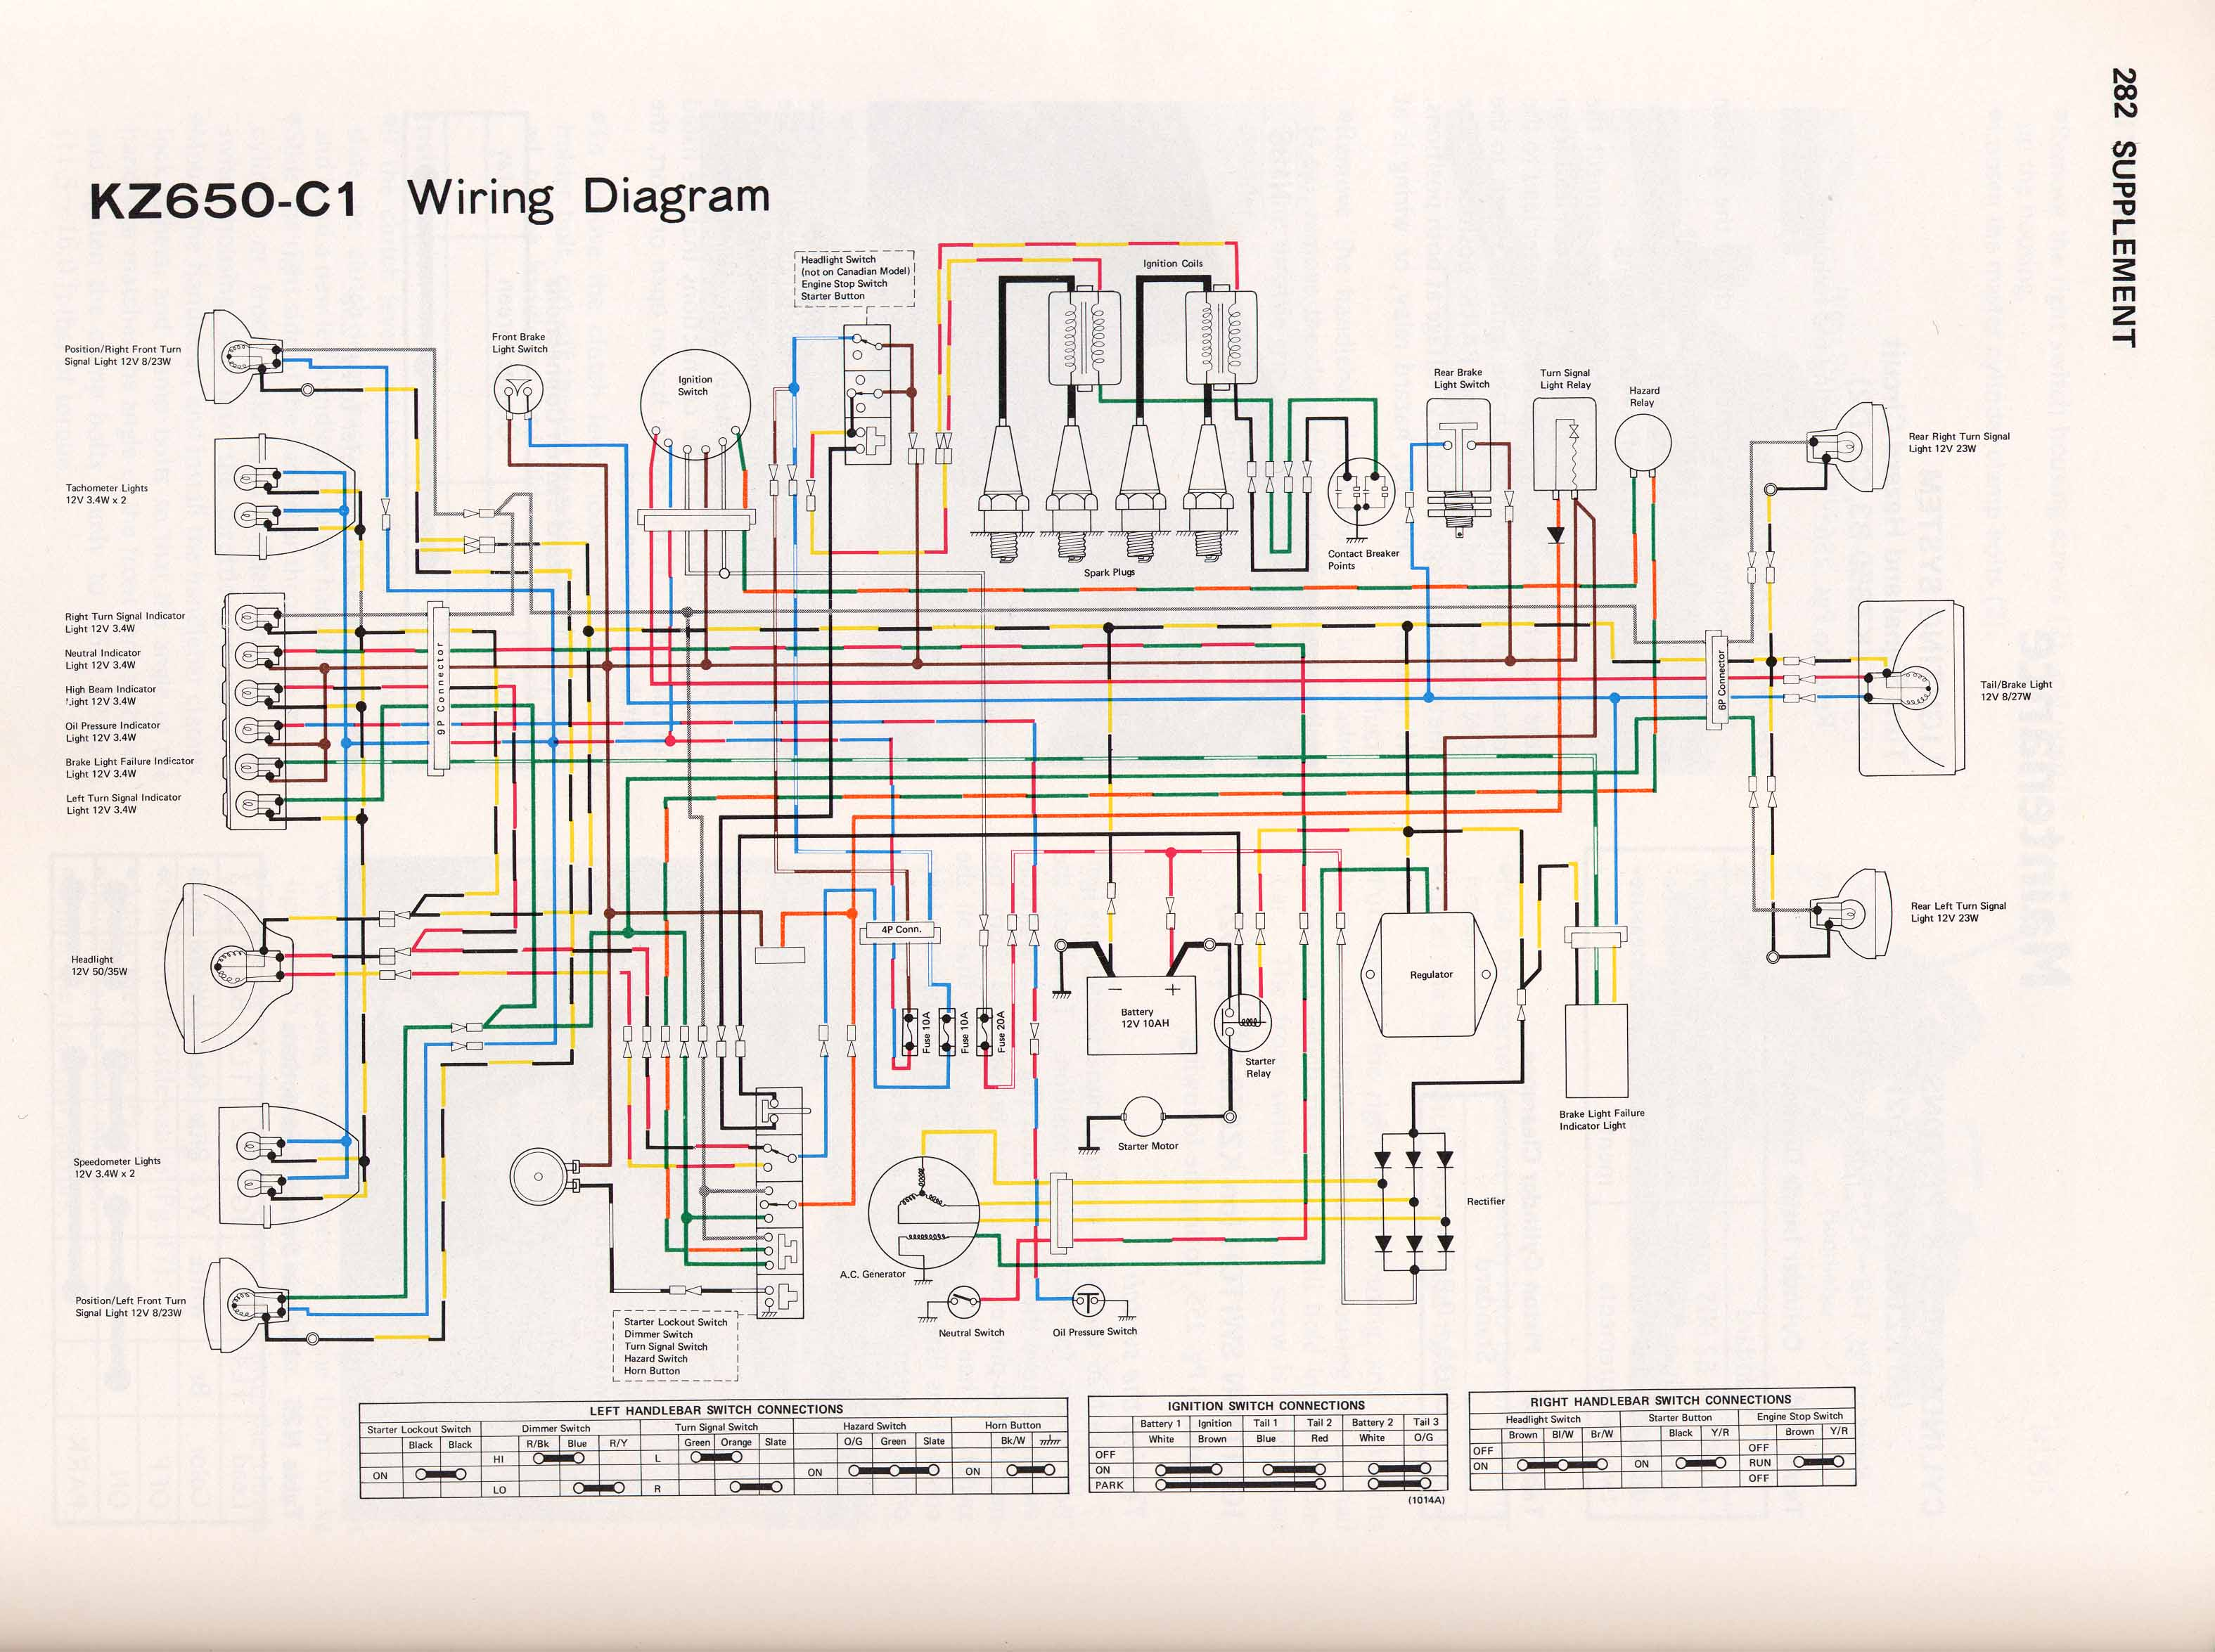 KZ650 C1 kz650 info wiring diagrams kz440 wiring diagram at creativeand.co